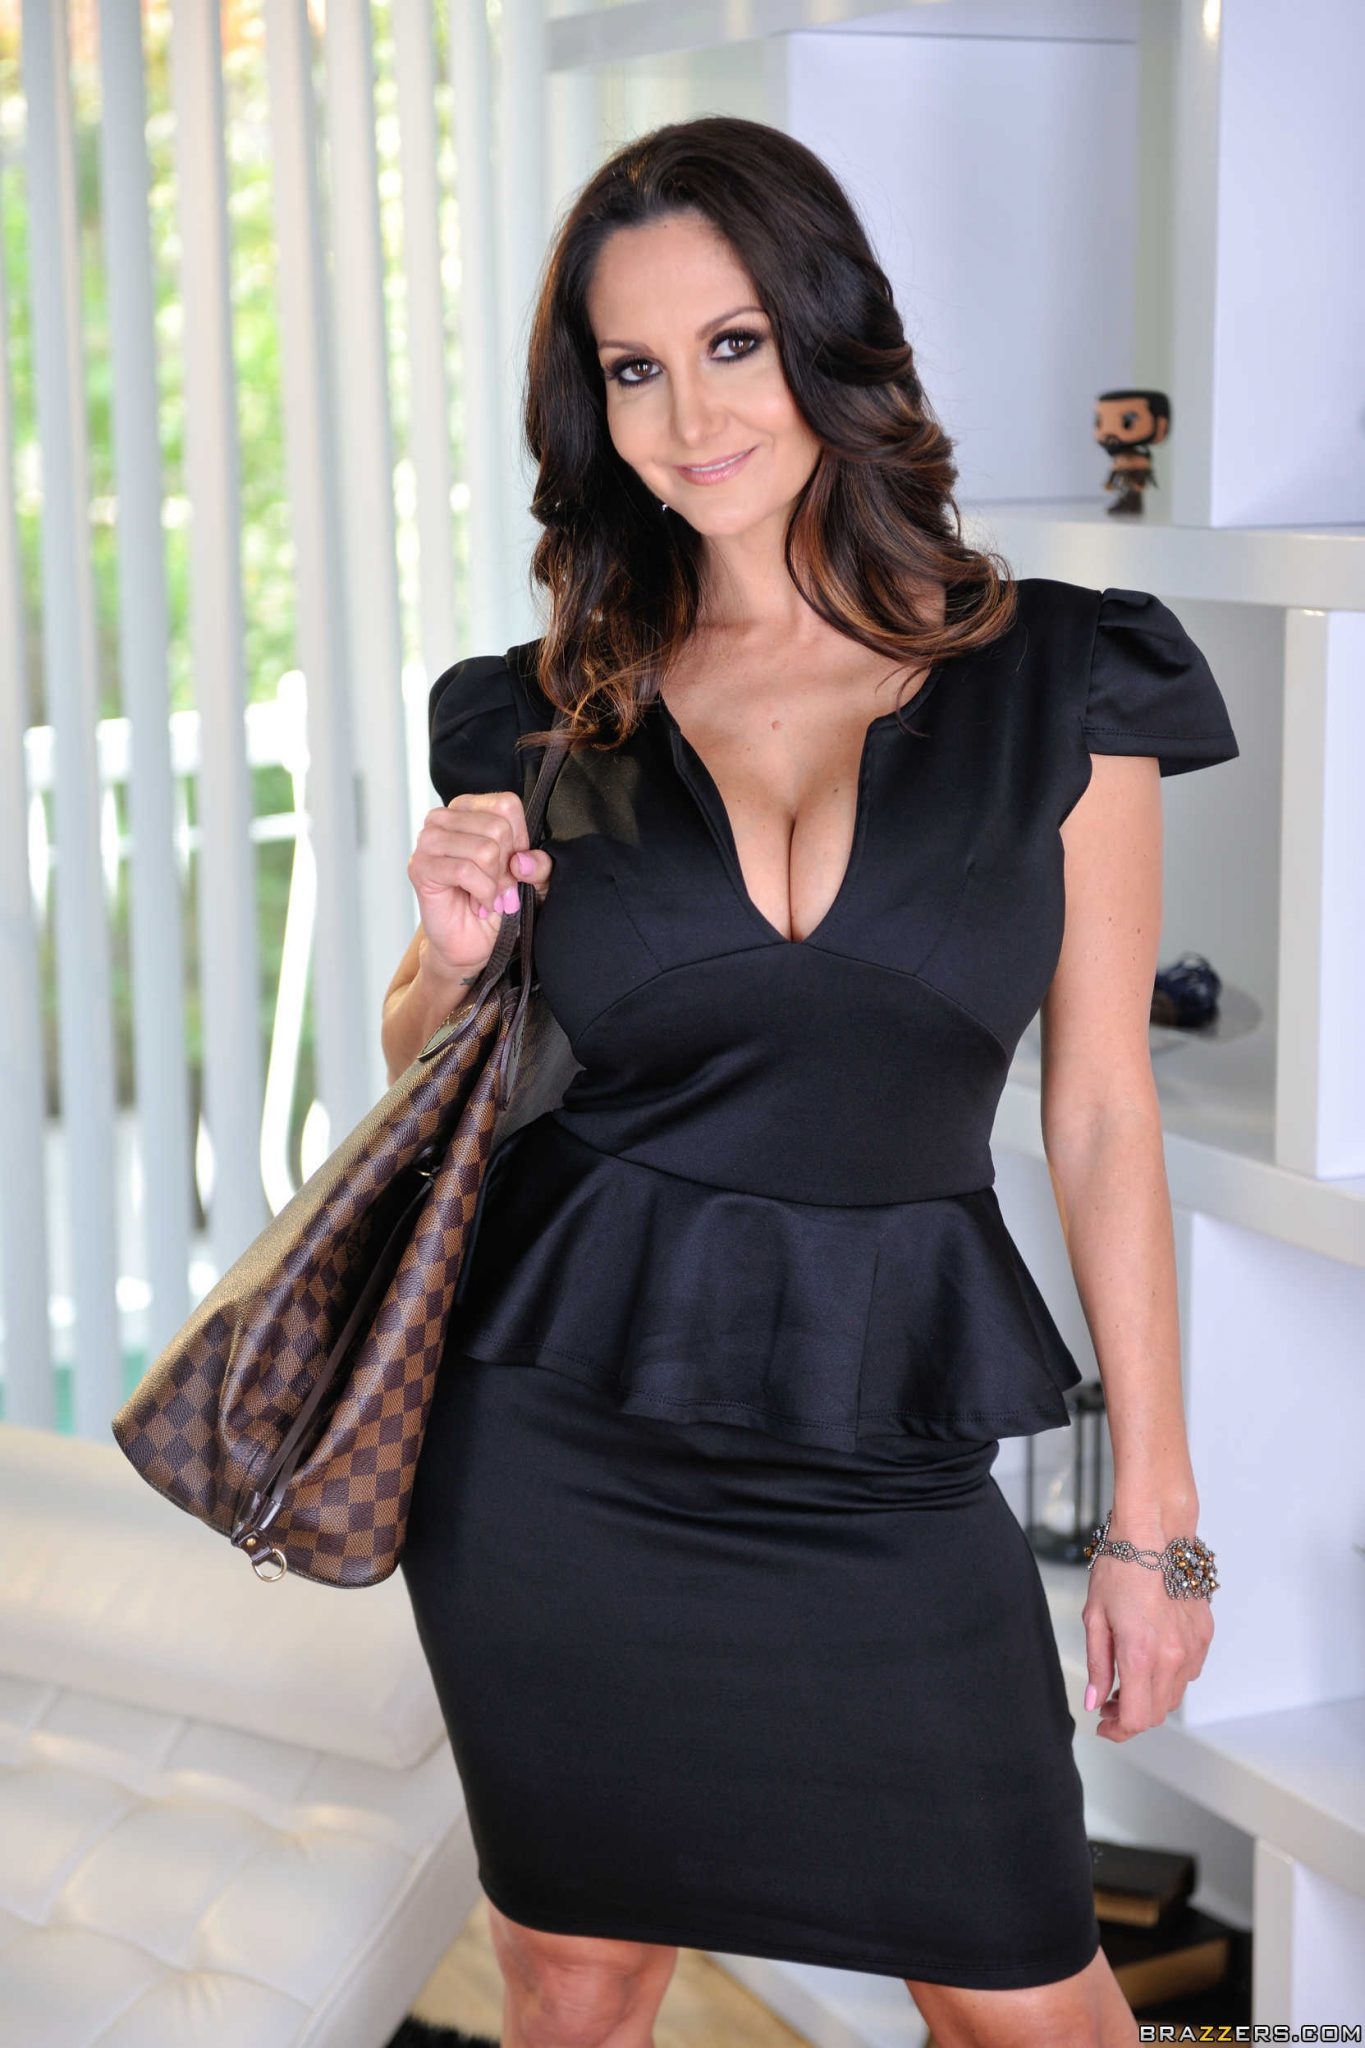 Ava Addams is Your Hot Boss | Slutty Lingerie